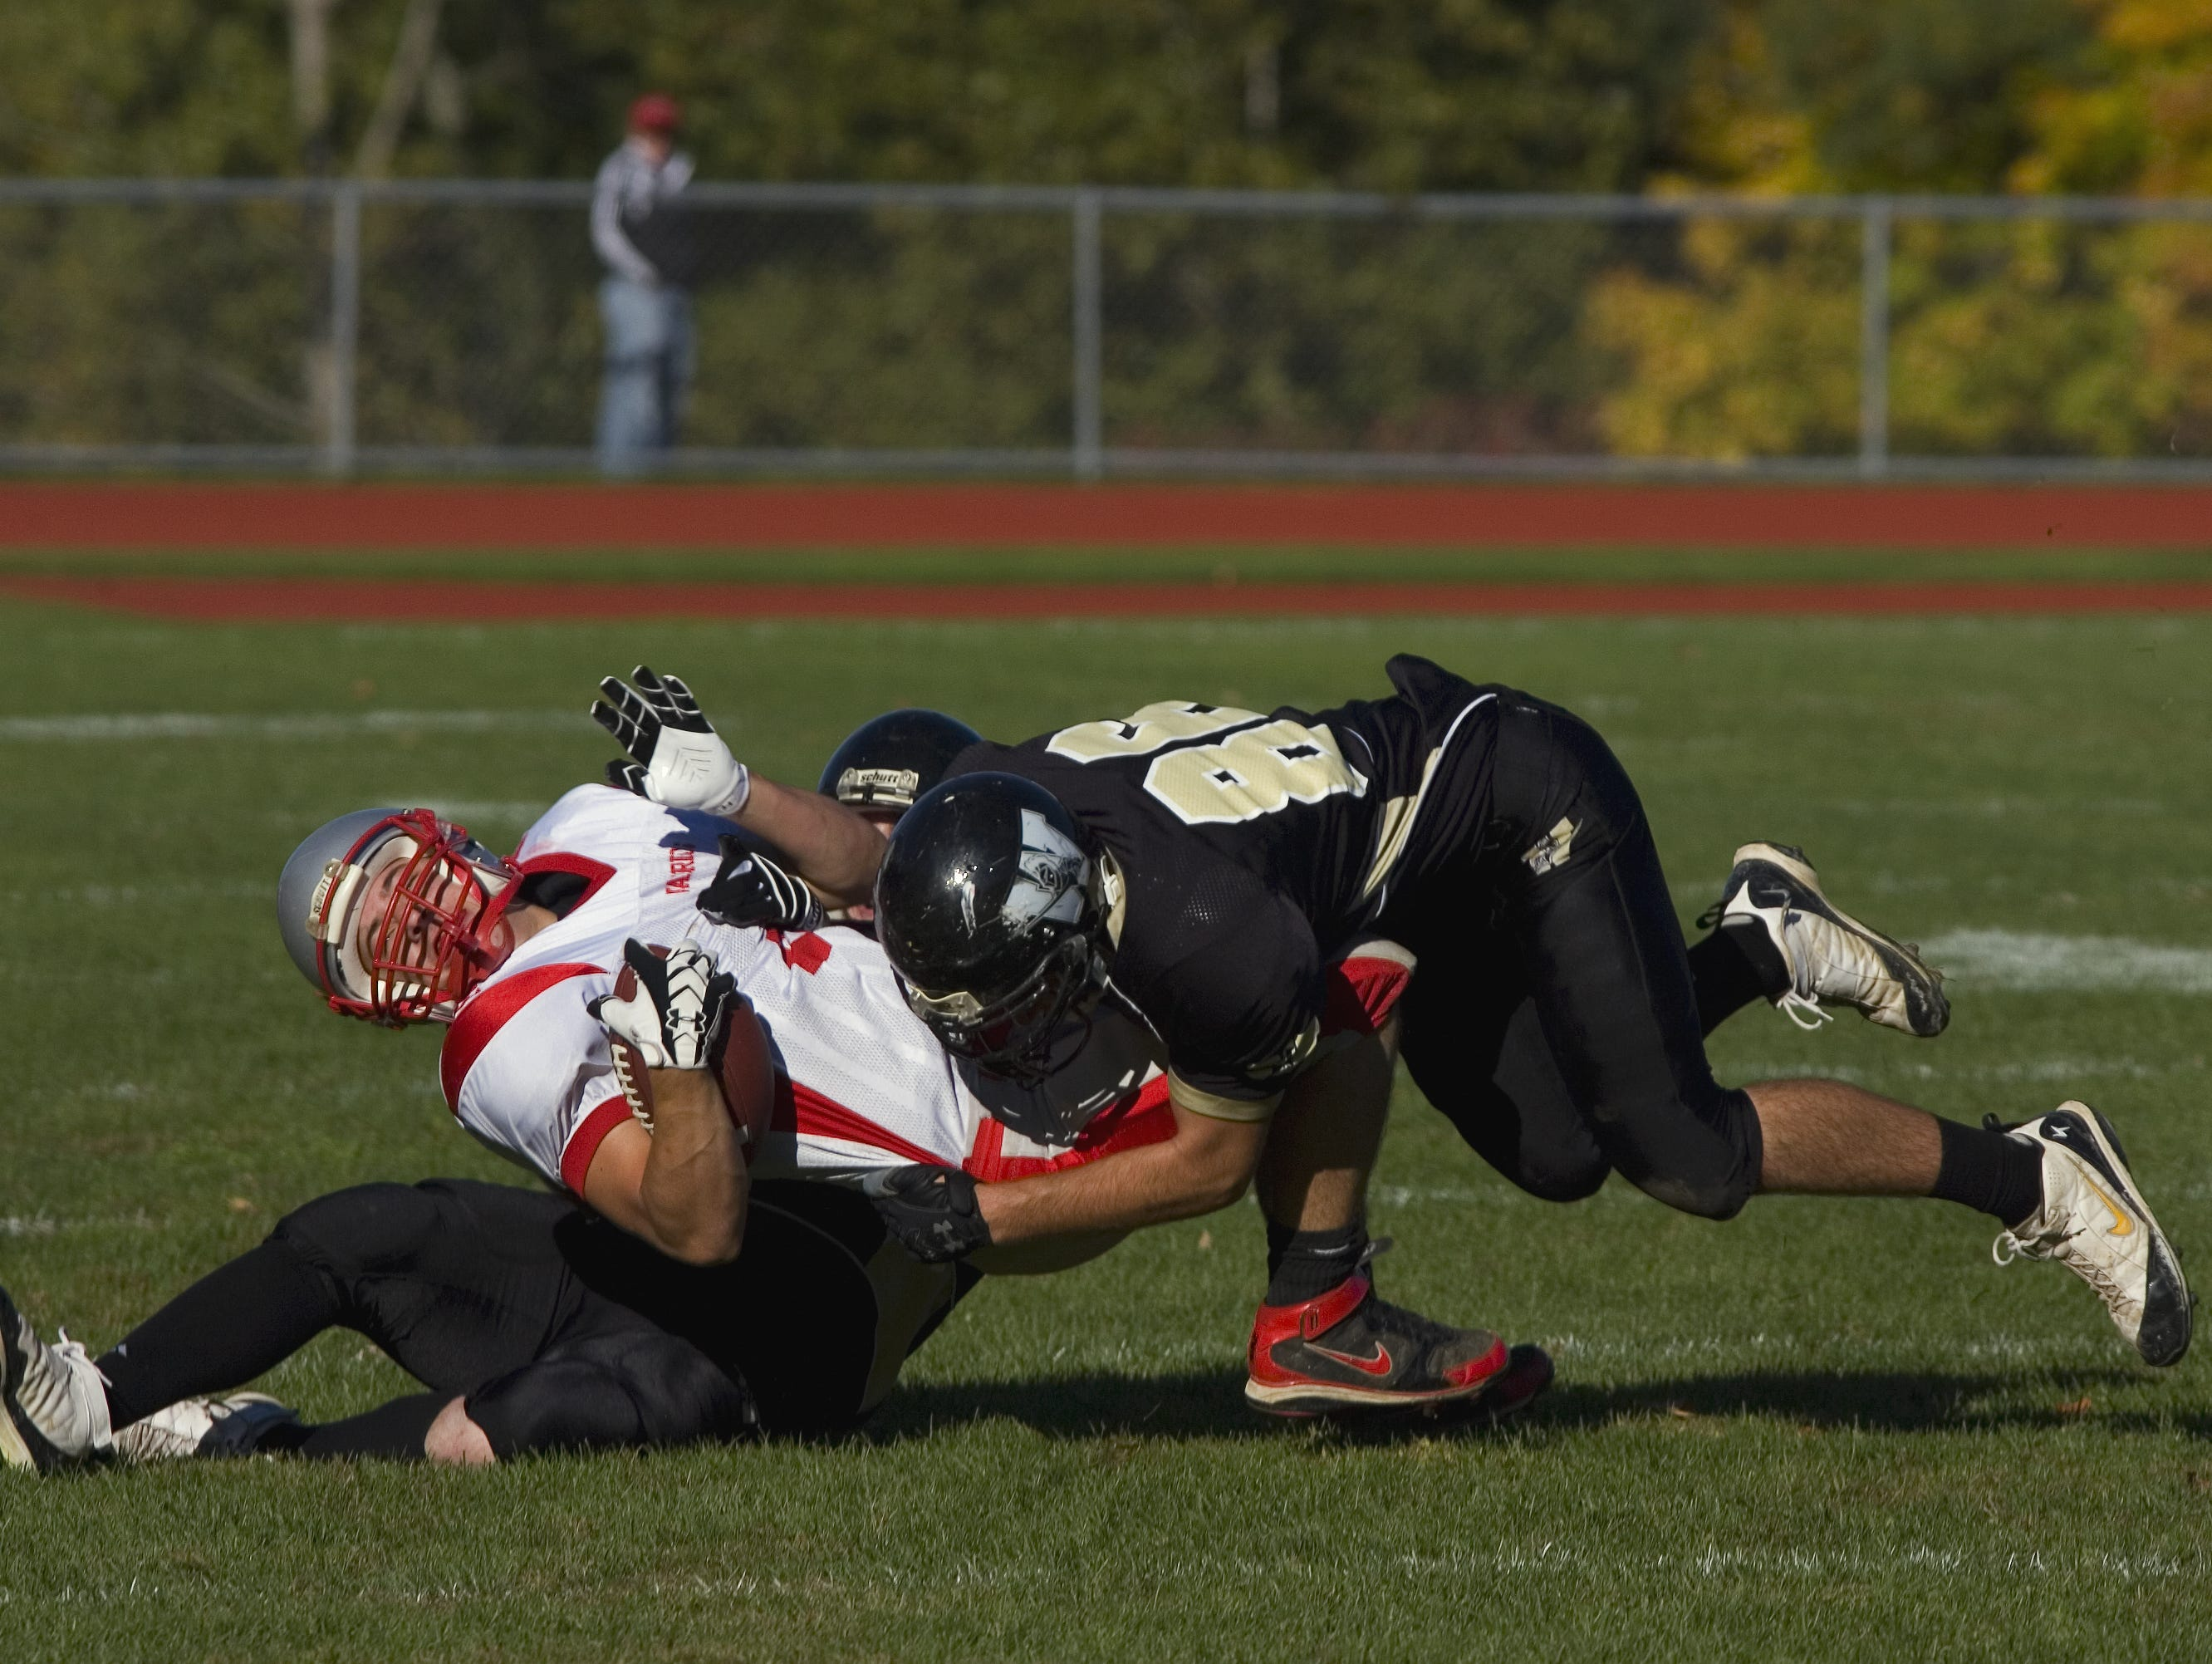 From 2008: Windsor's Richie DiVirgilio, right, and Timmy Costello, bottom, take down Chenango Valley's Ricky Ruffo in the fourth quarter Saturday afternoon in Windsor.